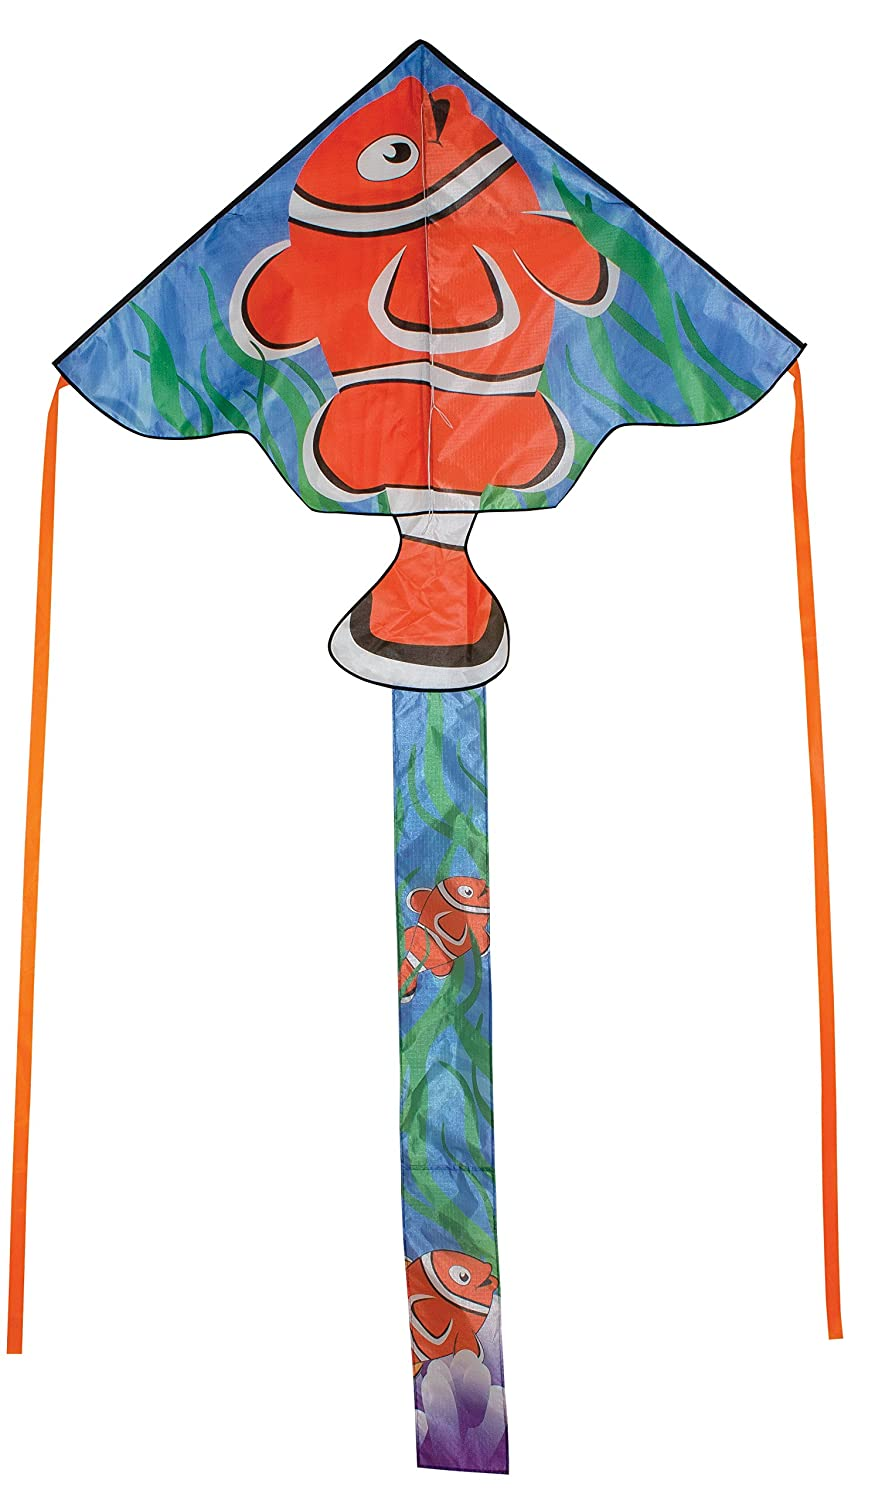 in The Breeze Clownfish 45 inch Fly-Hi Kite - Fish Theme Single Line Kite - Ripstop Fabric - Kite Line Bag Included 3229